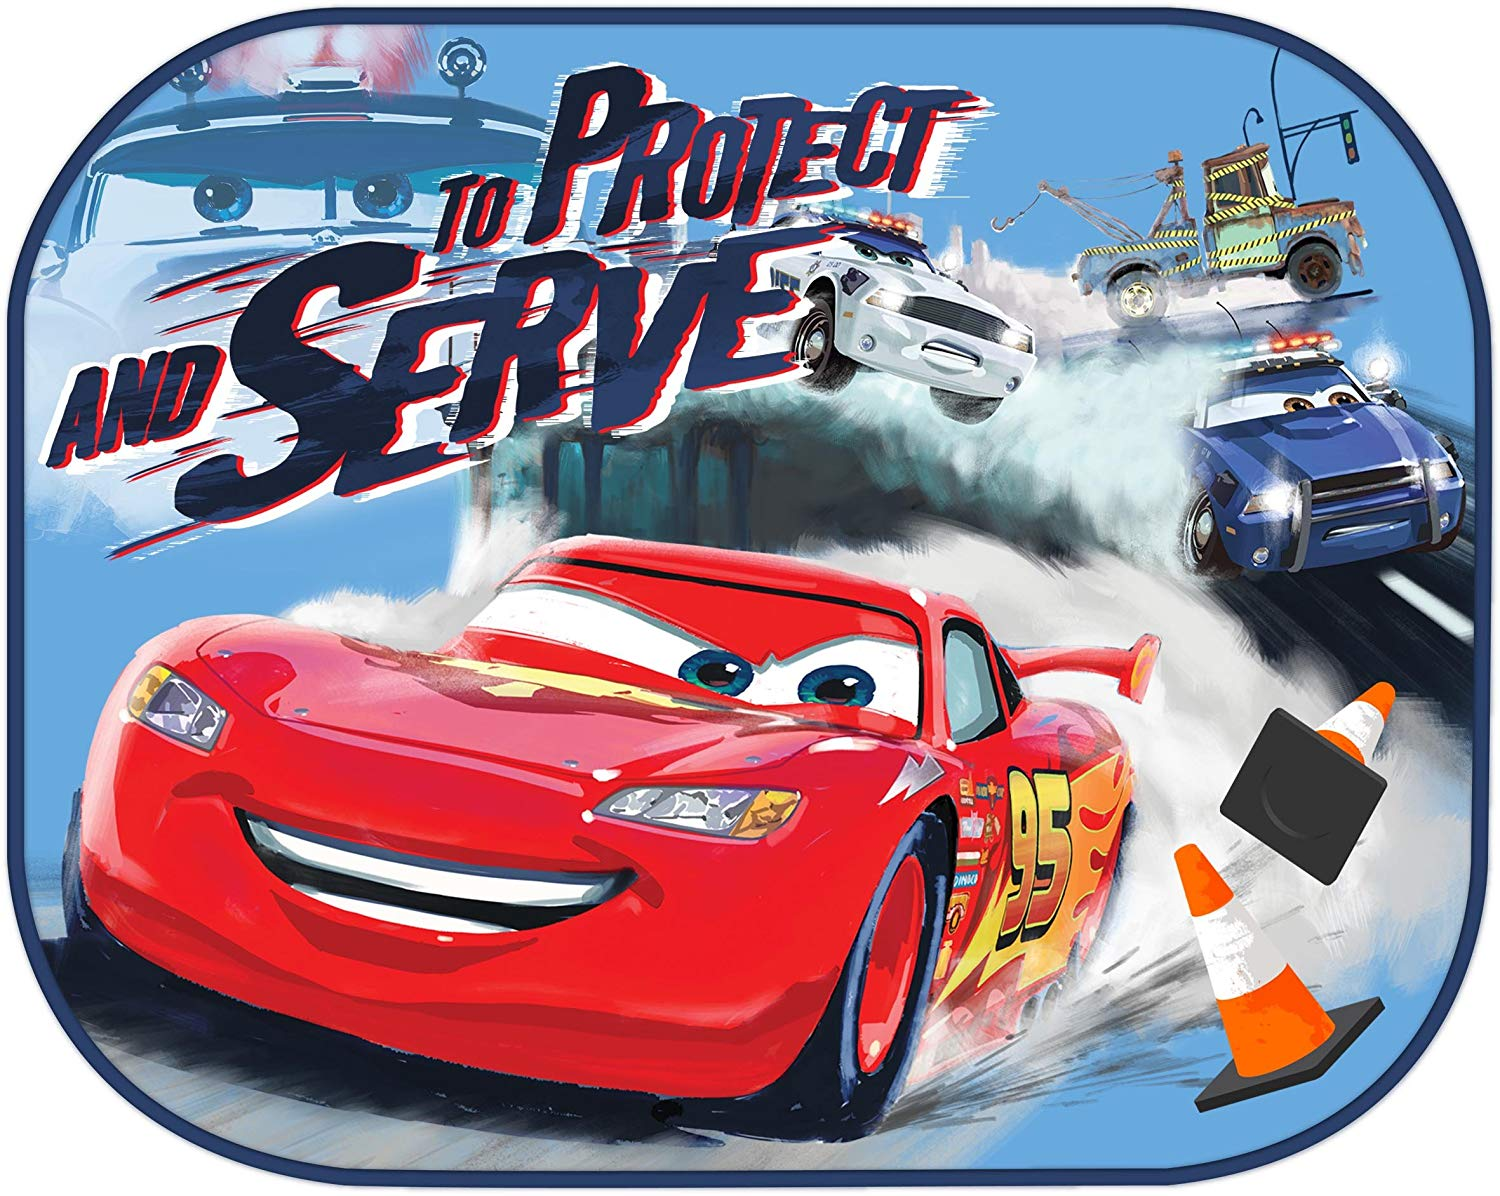 Details about Twin Pack Disney Cars Window Sun Shade Lightning Mcqueen Baby  Window Visor 650fe6ae3d9